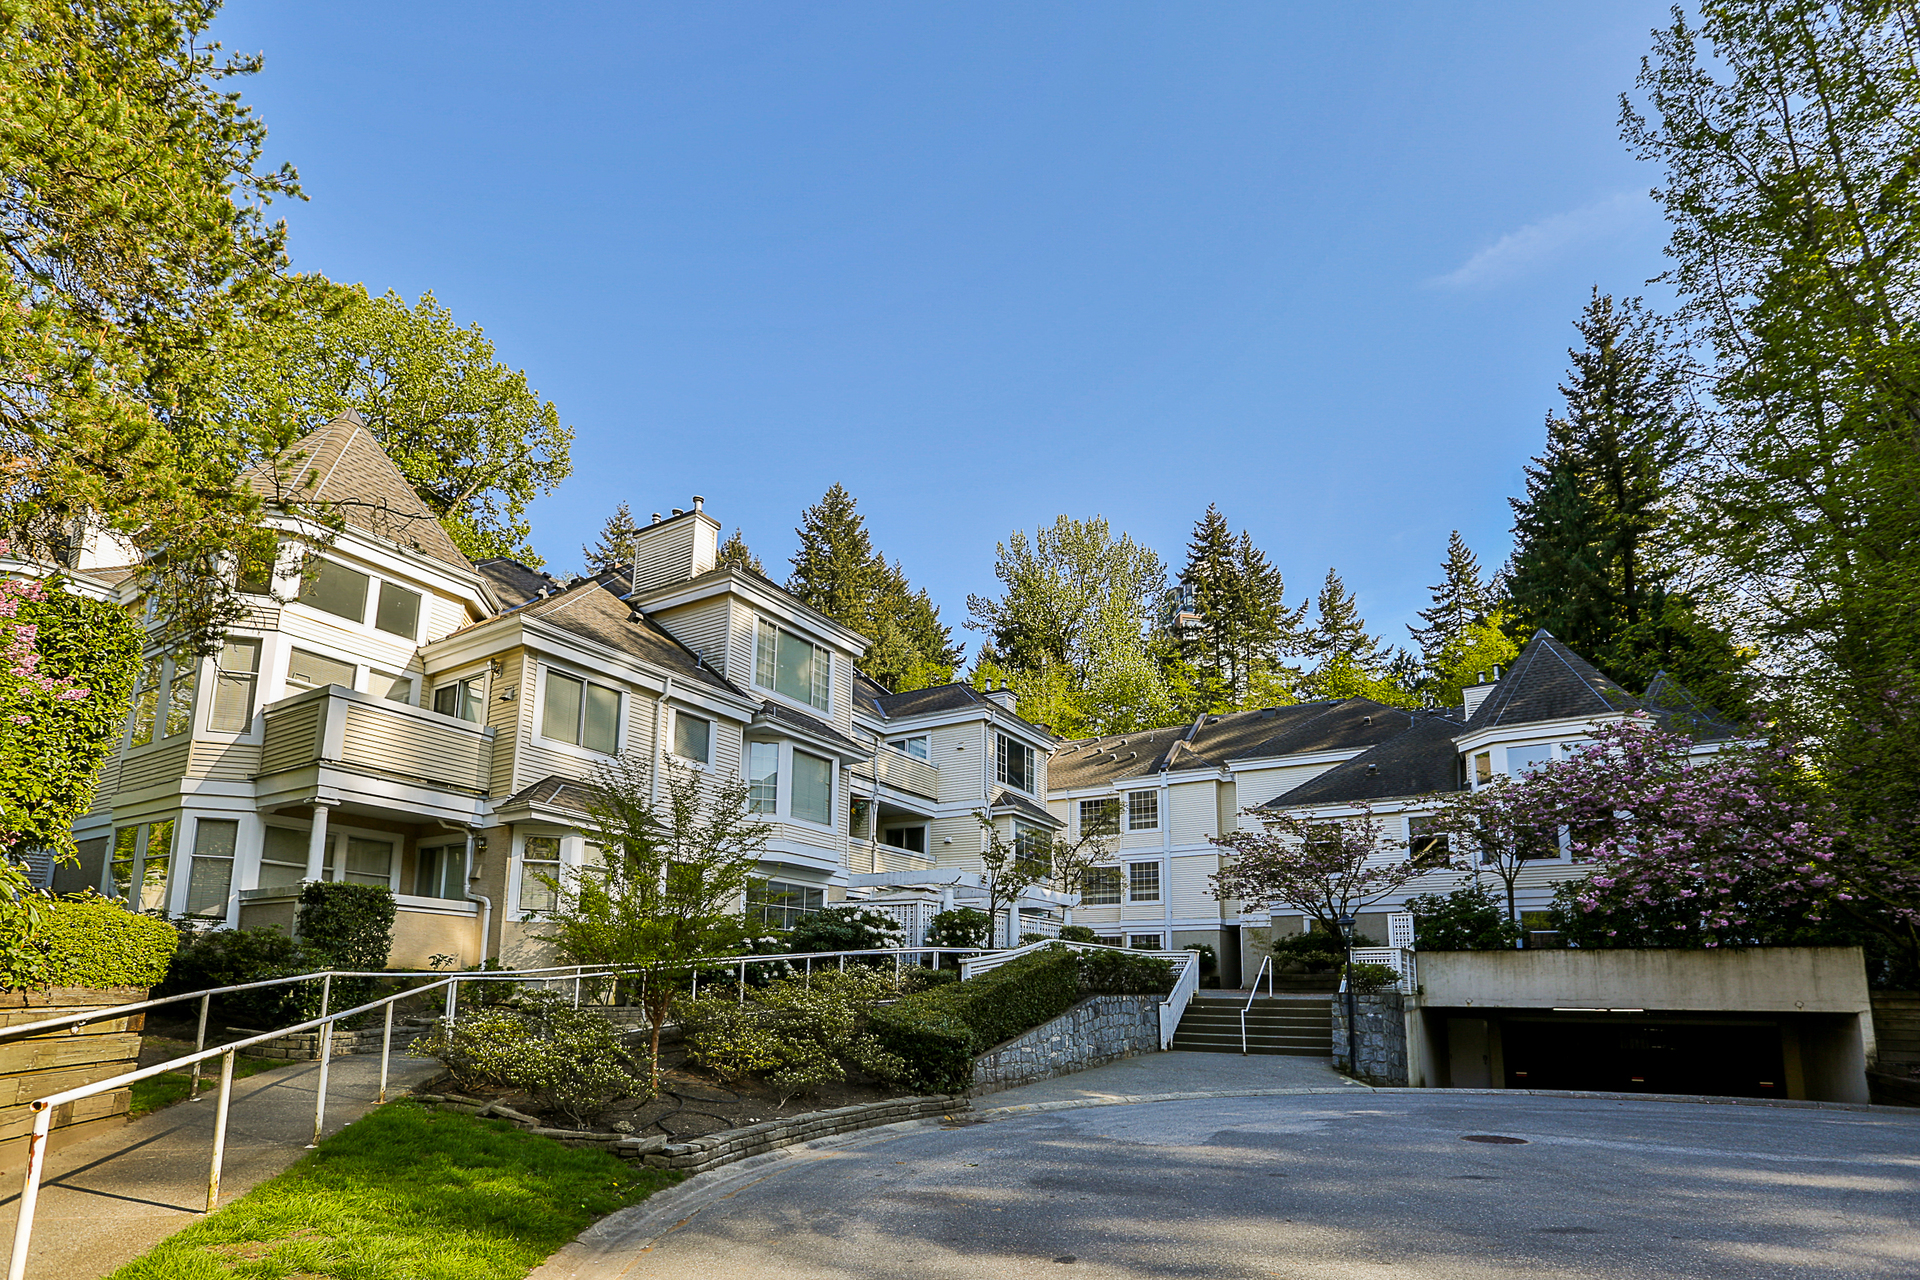 306 - 6860 Rumble Street, South Slope, Burnaby South 2